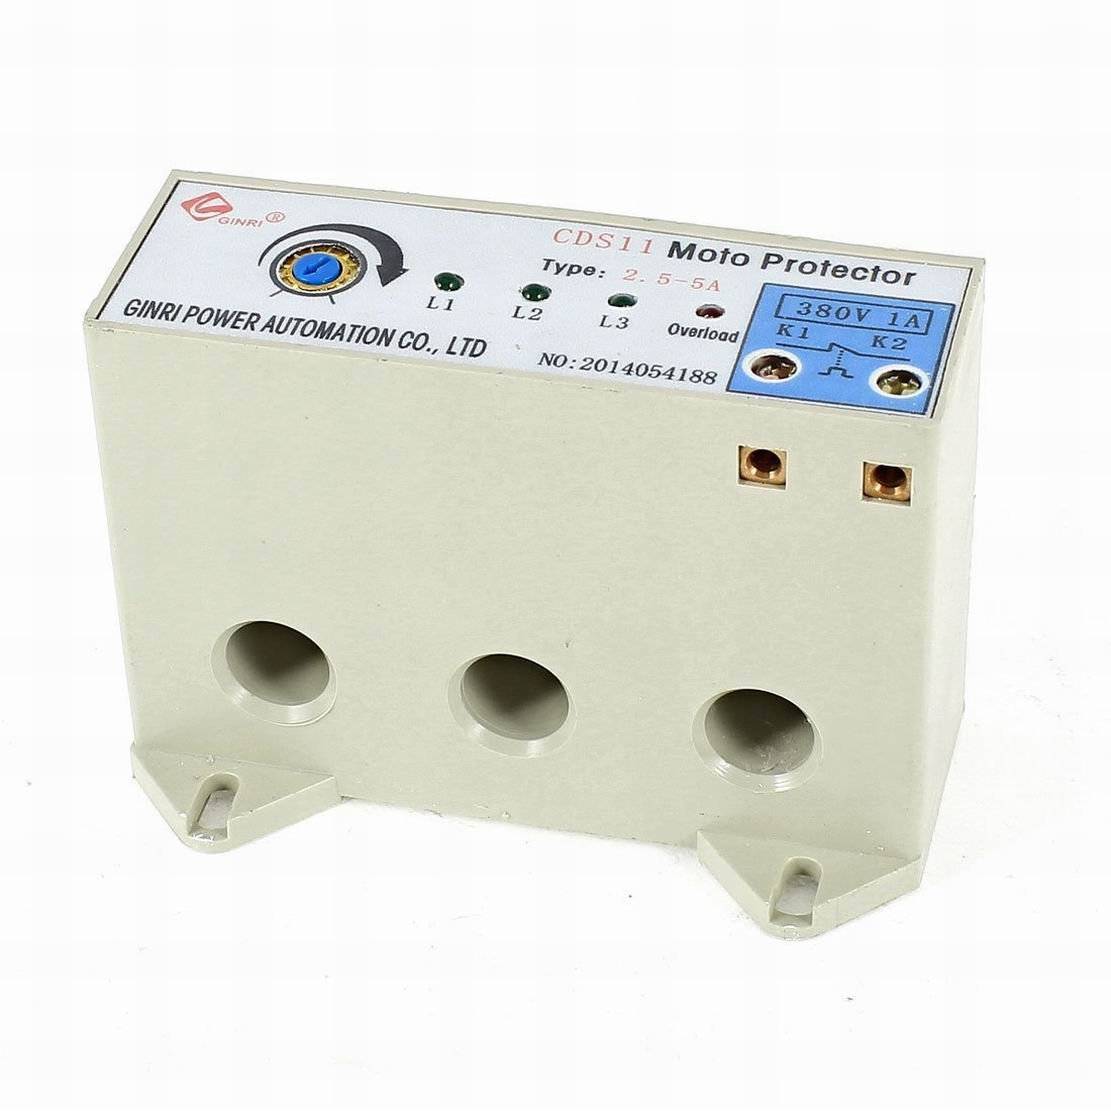 Uptell CDS-11 3 Phase 2.5-5 Ampere Adjustable Current Motor Circuit Protector